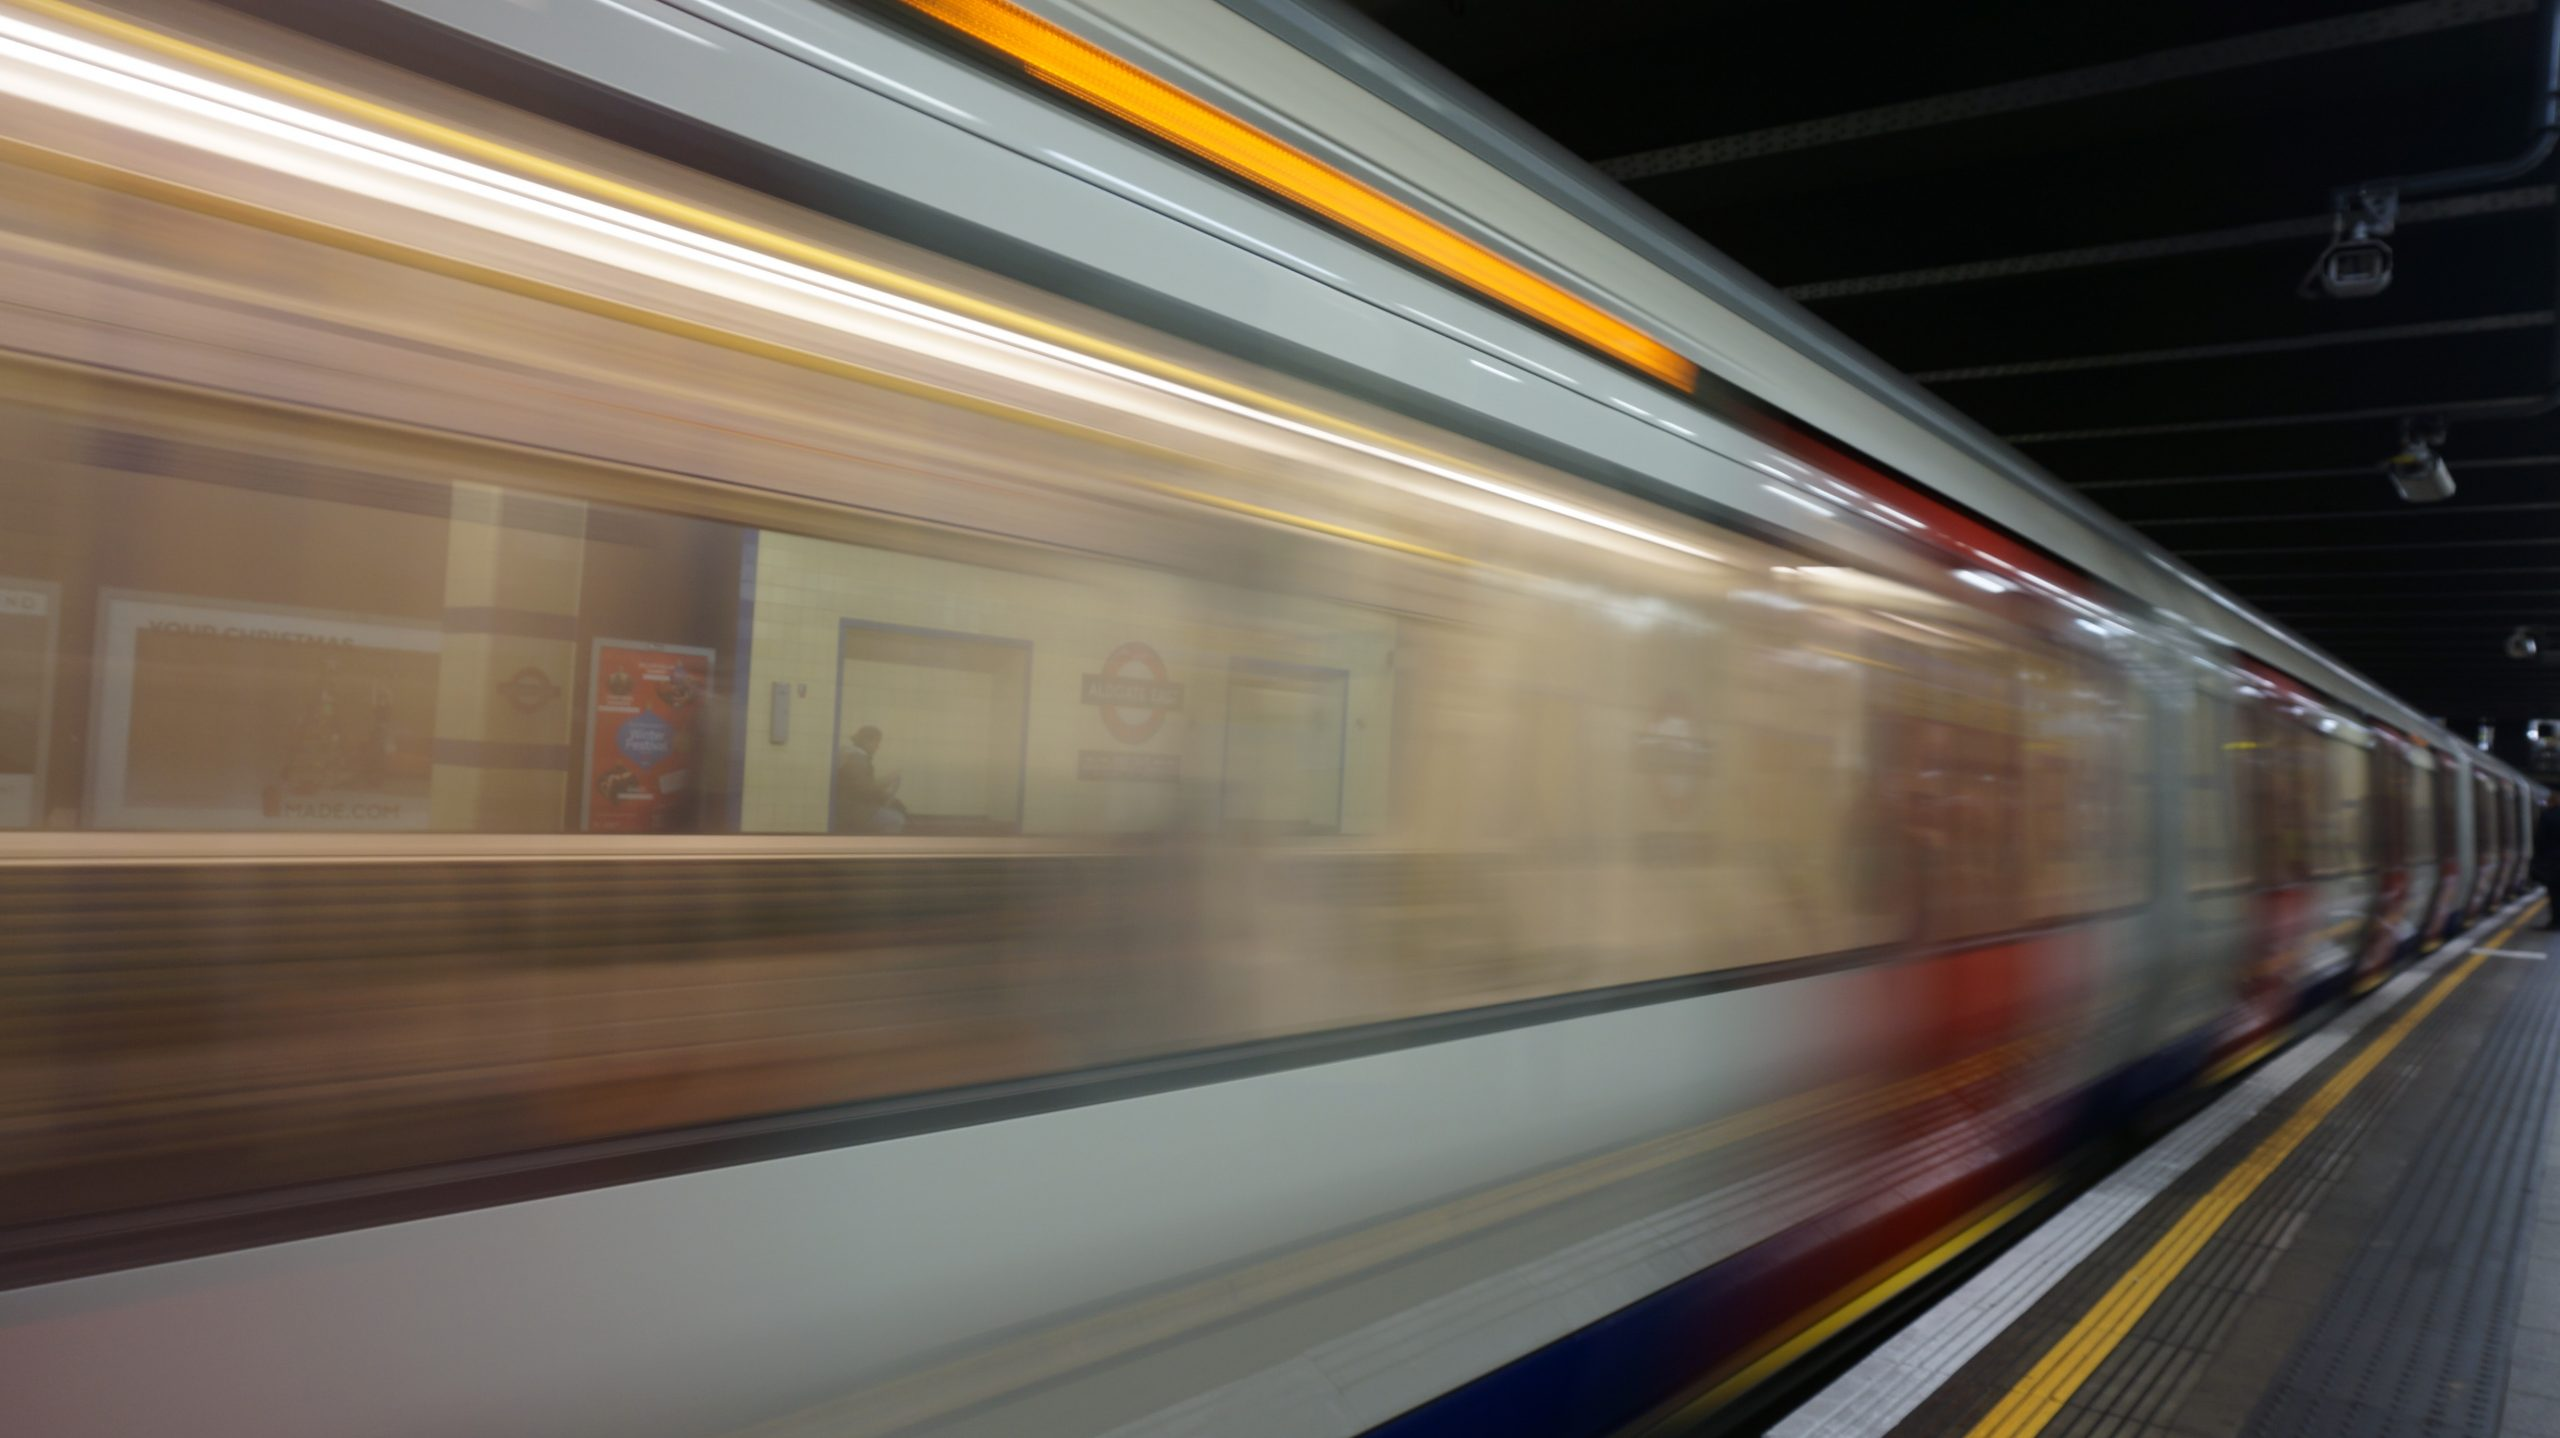 blurred motion photo of subway train leaving station